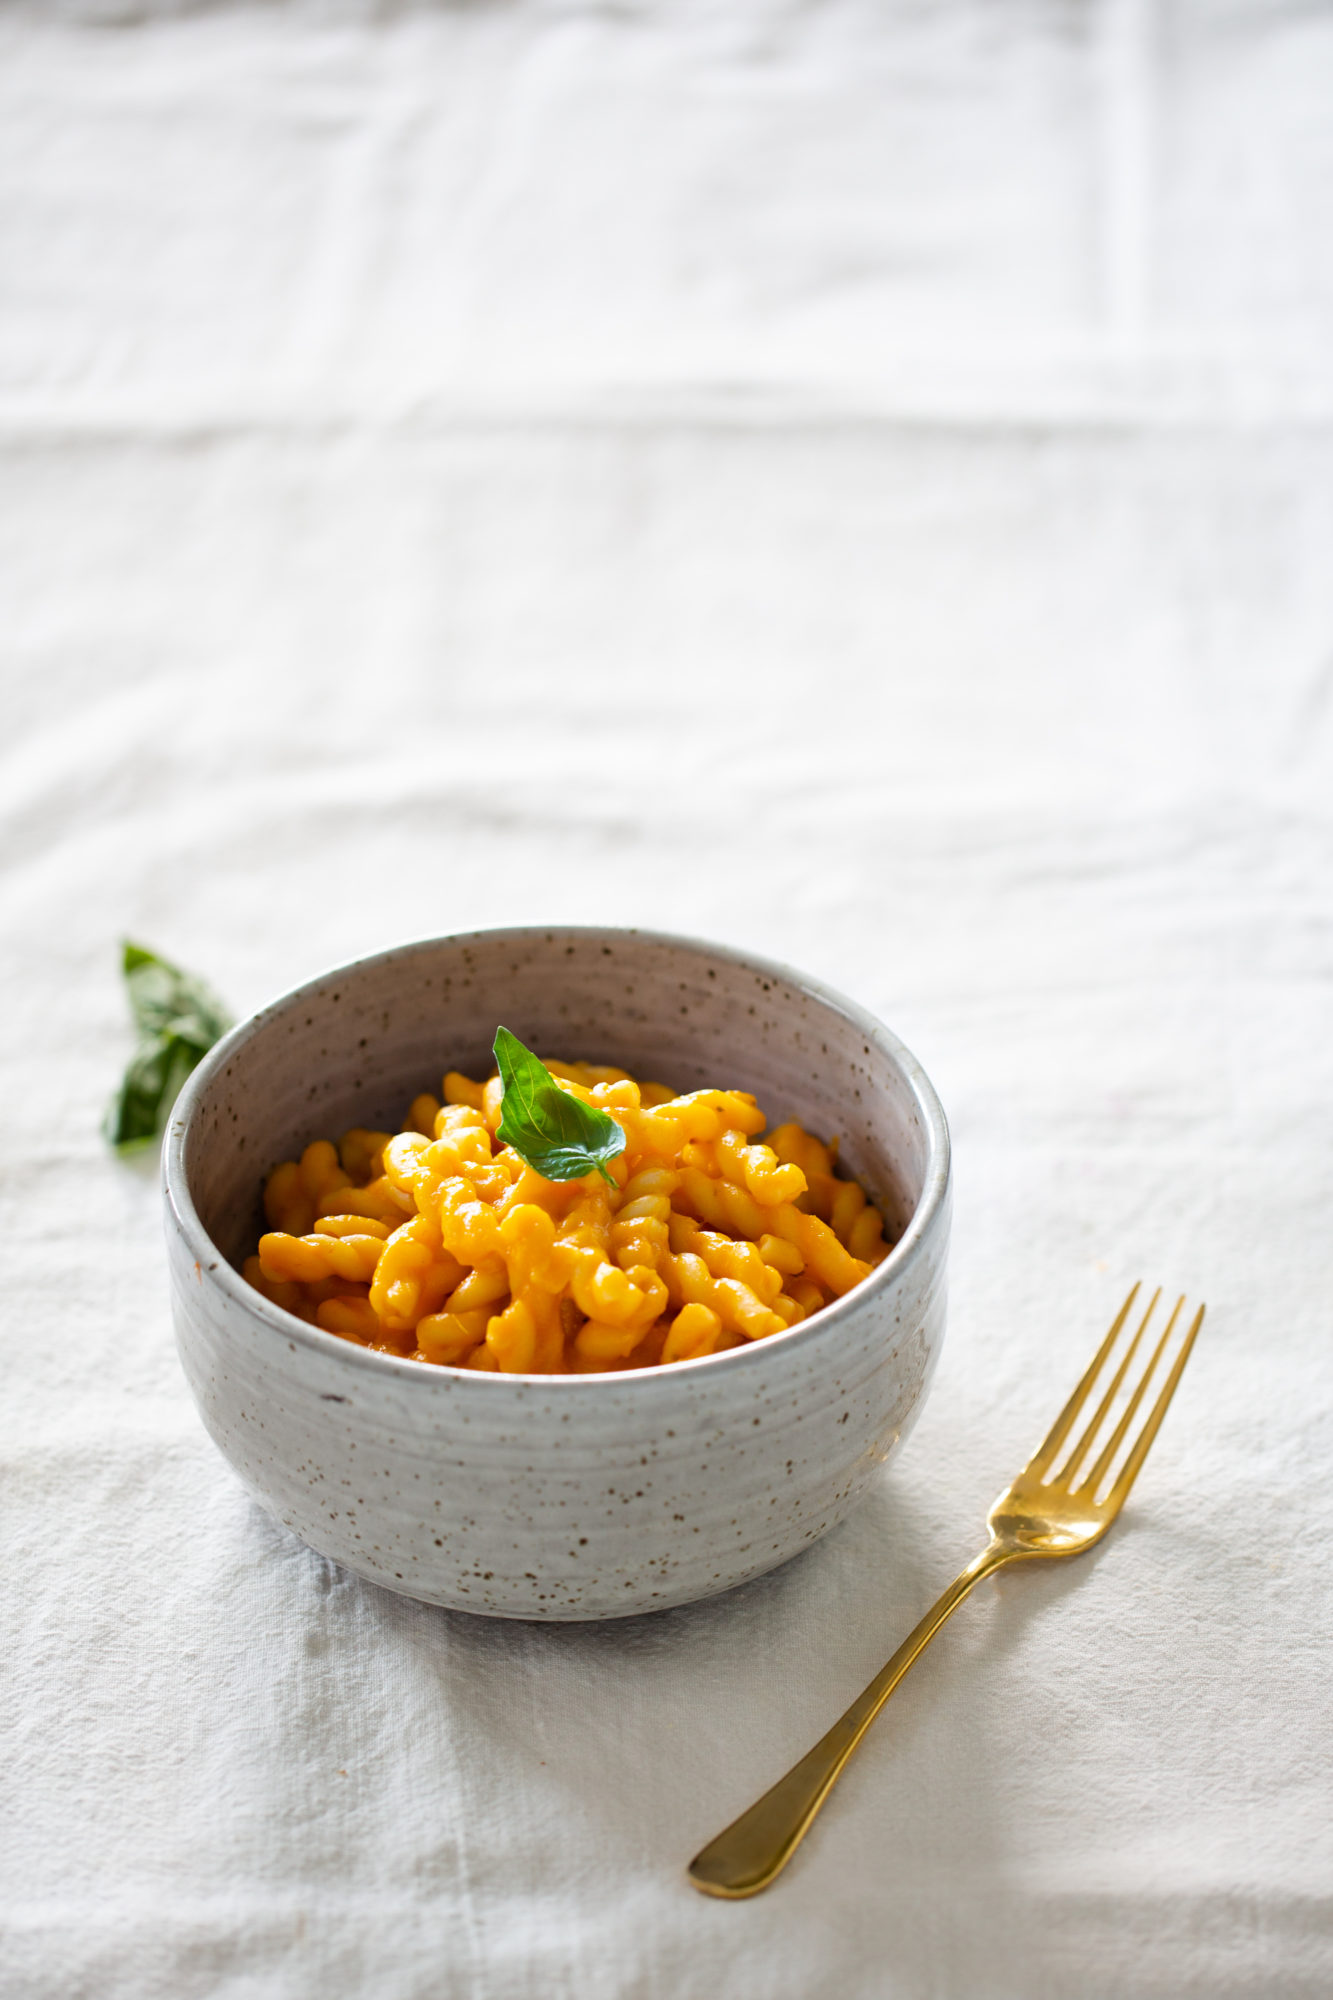 Bowl of pasta with butternut and tomato sauce.